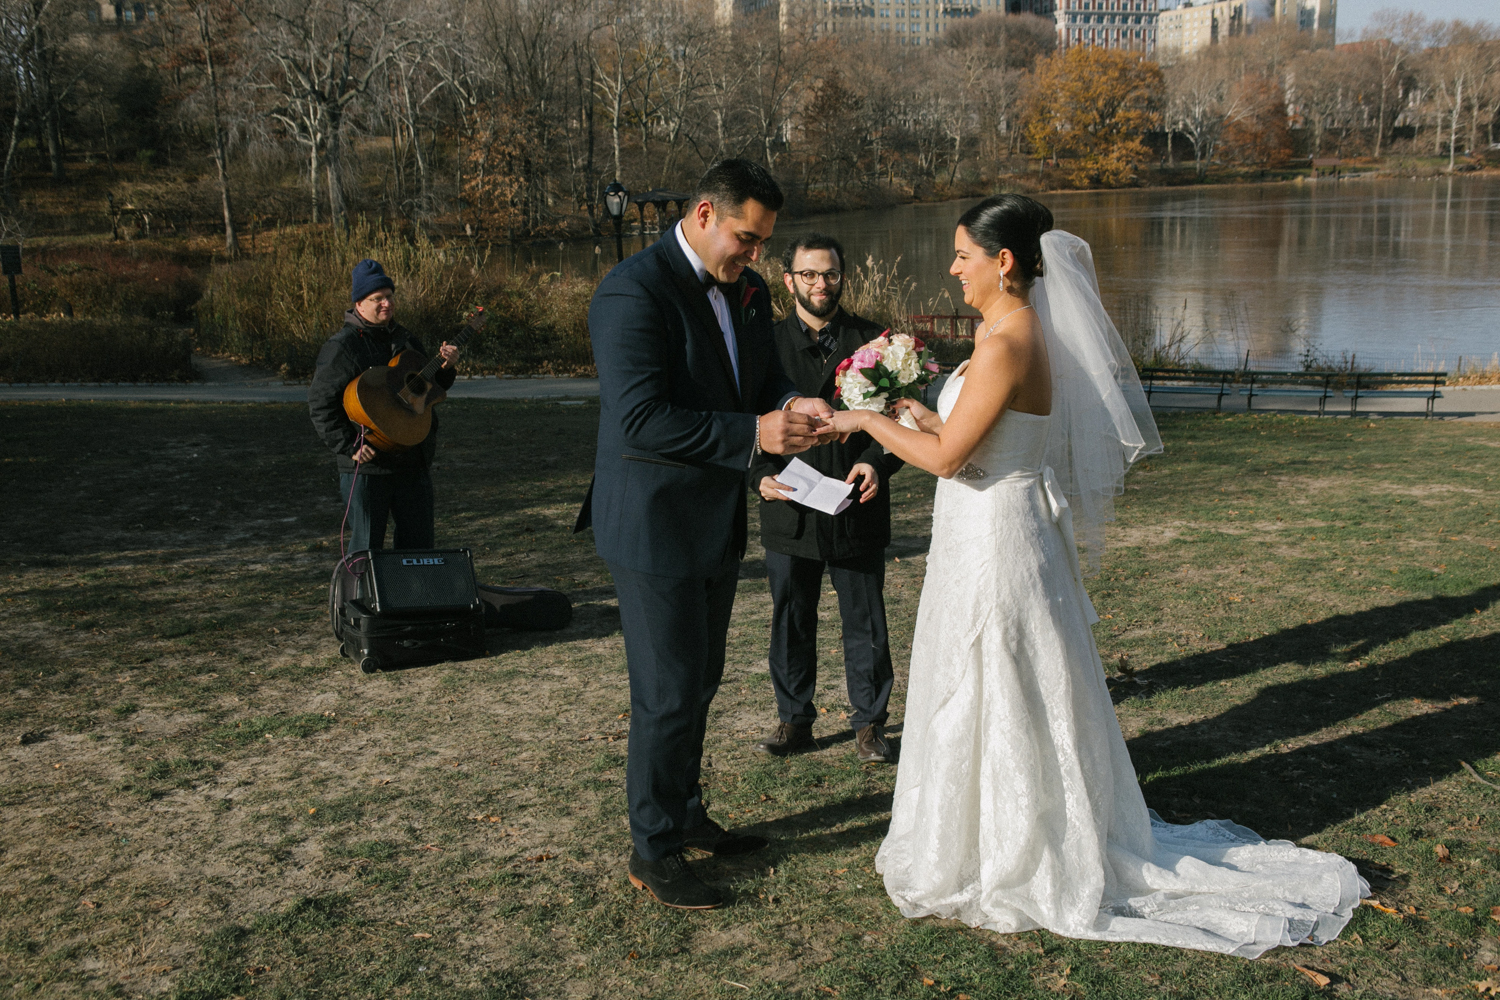 Bride an groom exchange rings during their elopement ceremony